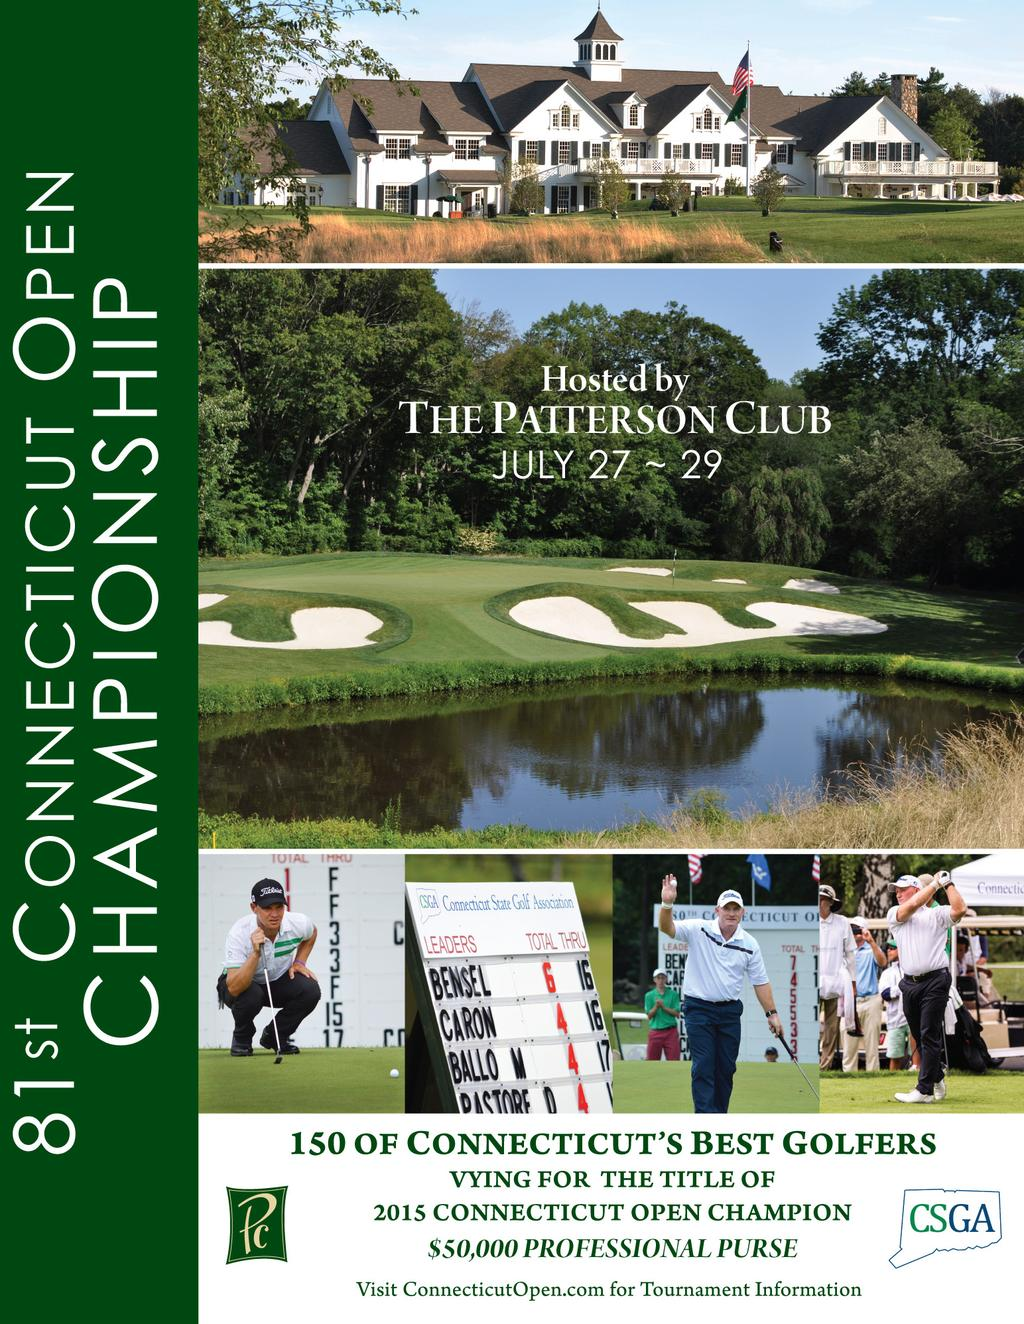 2015 Media Guide  81 st Connecticut Open Championship  The